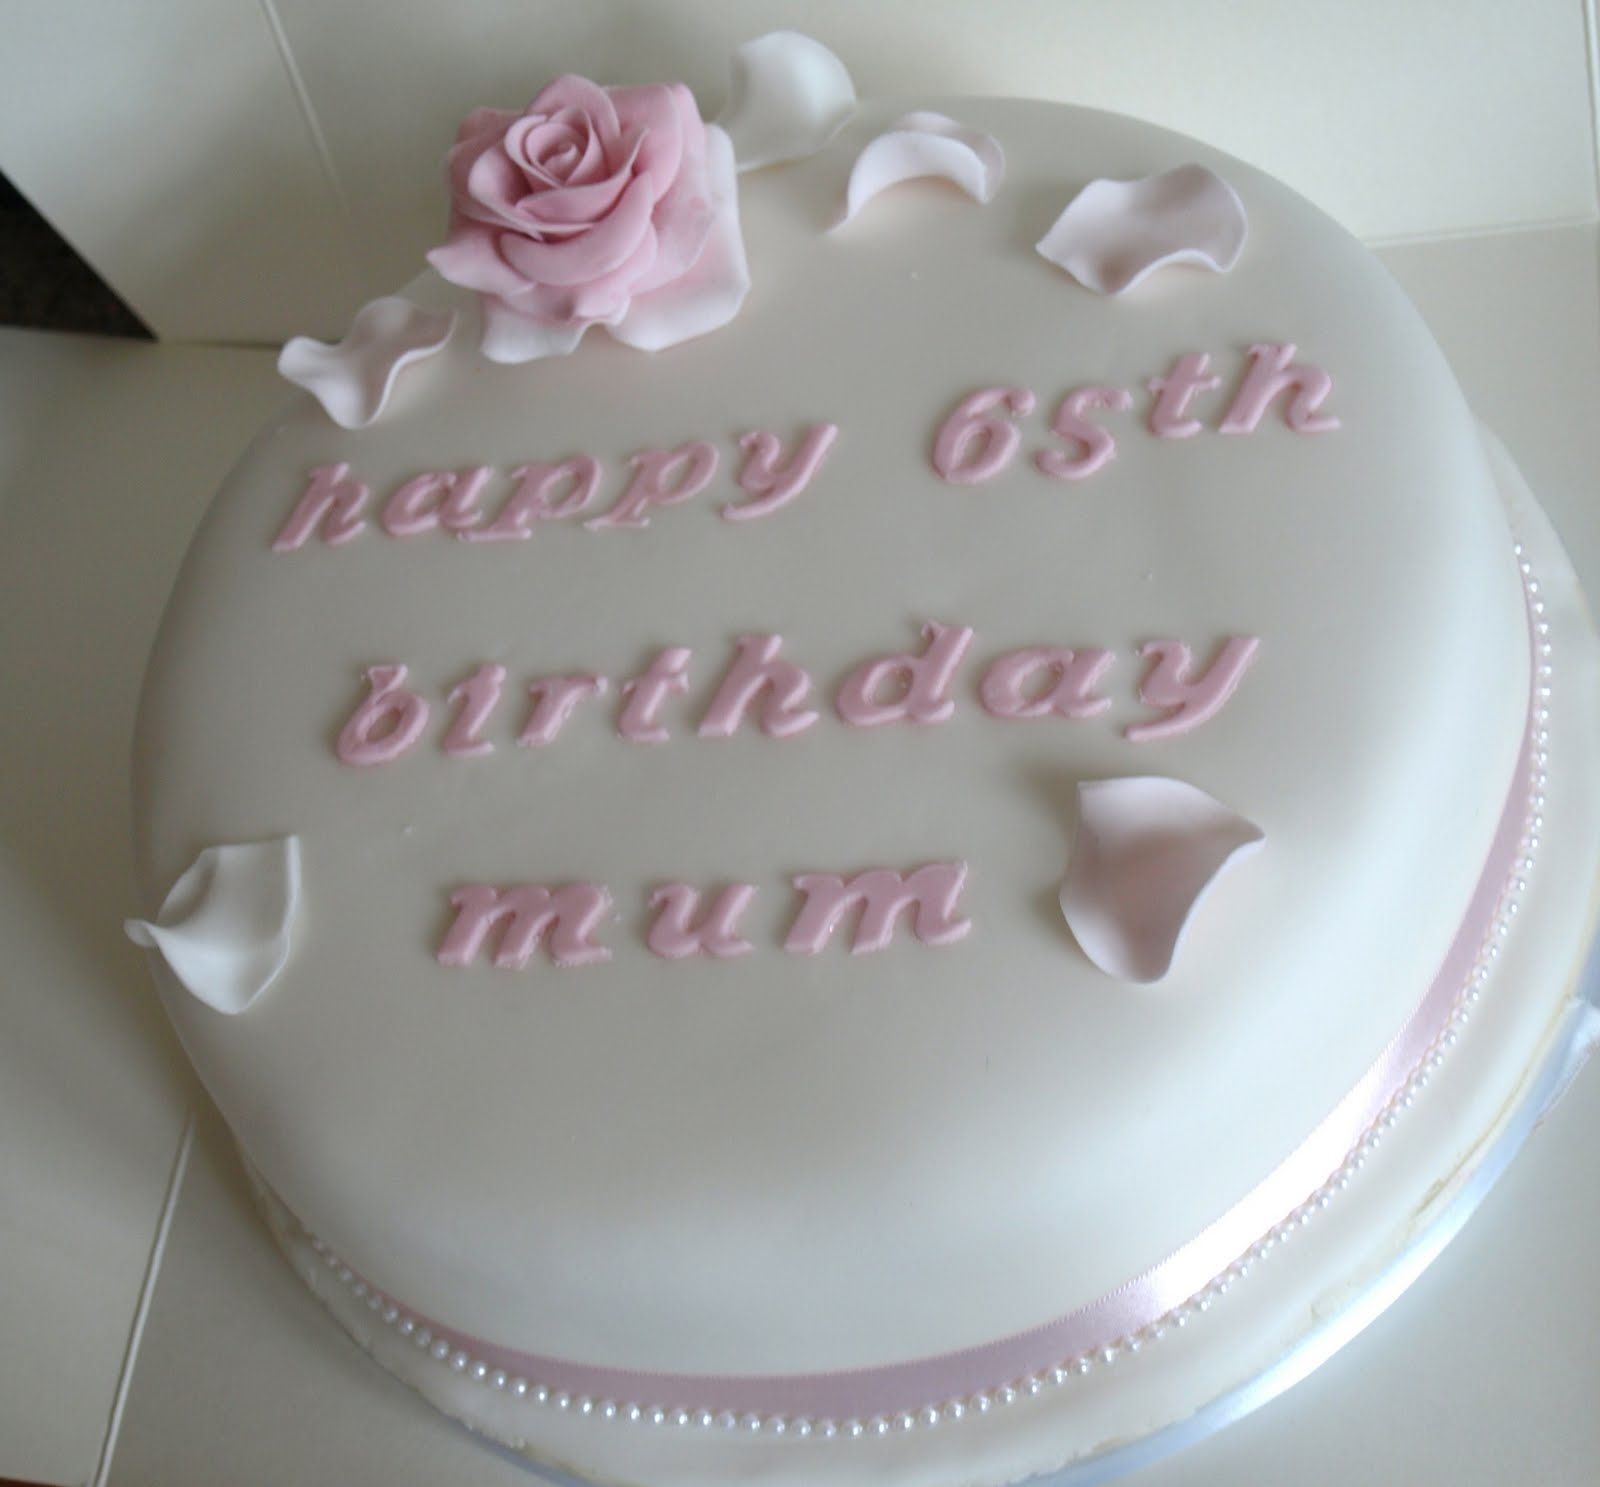 Elegant Birthday Cakes For Women Simple And Elegant 65th